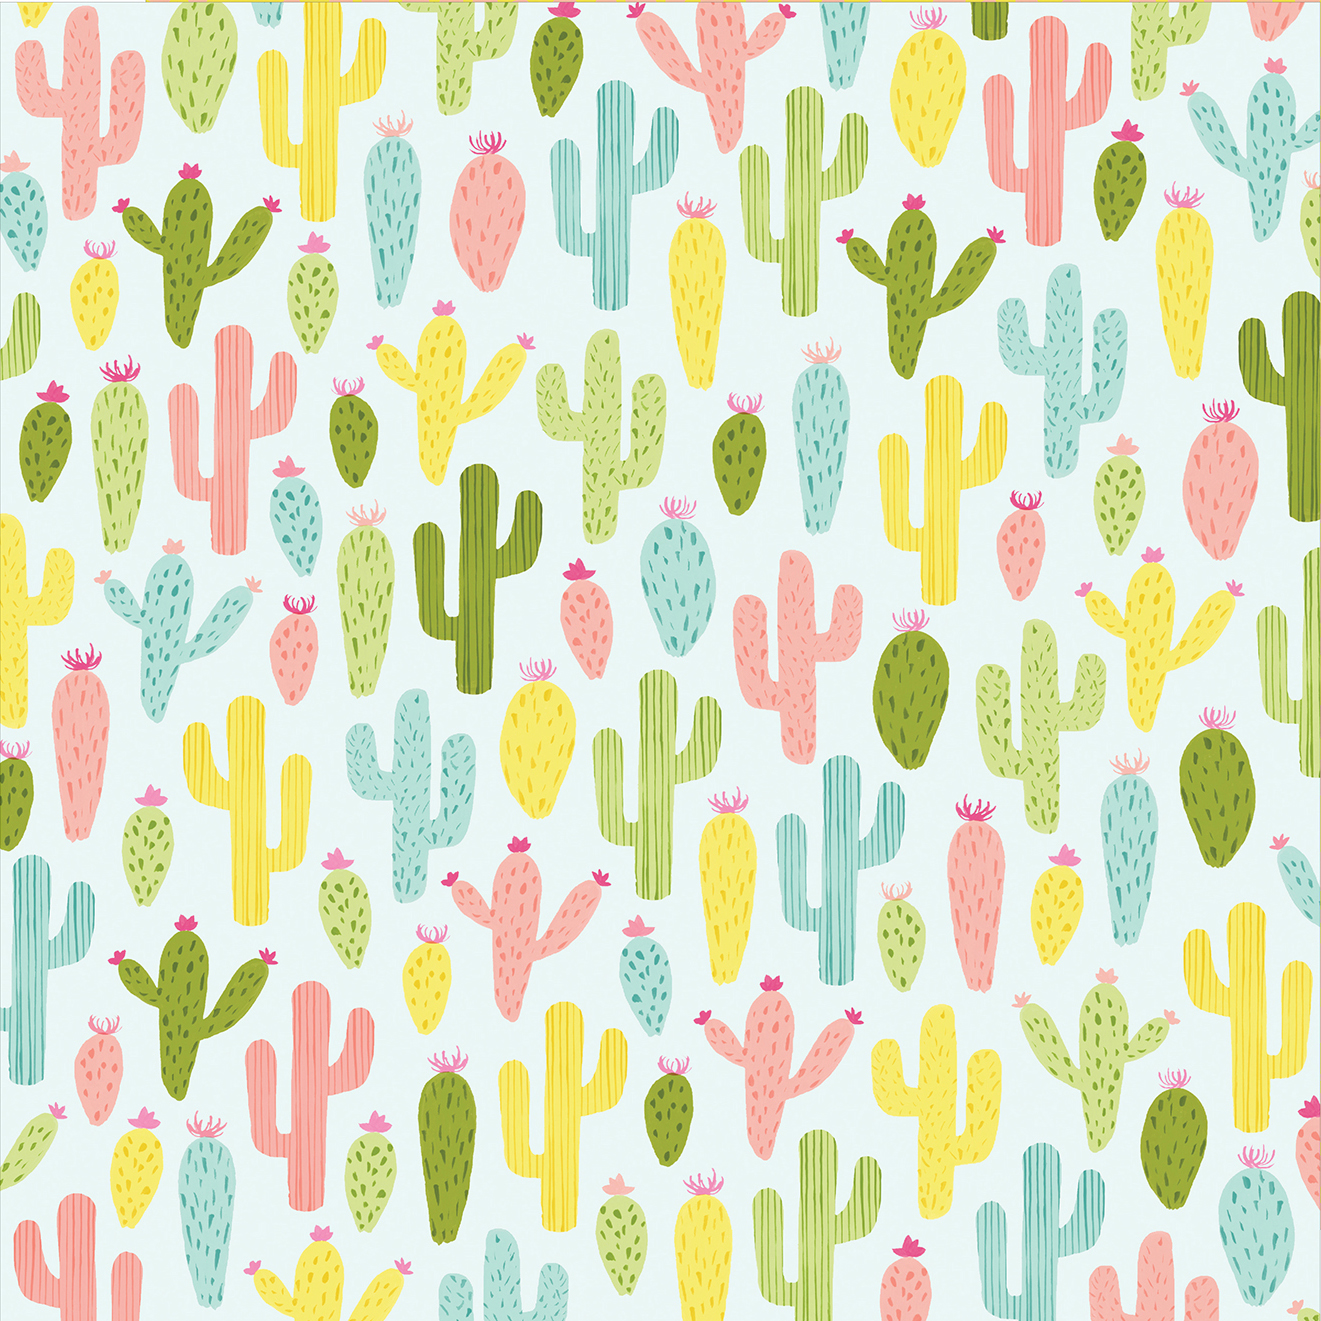 Buy the Multicolored Cactus Paper By Recollections at